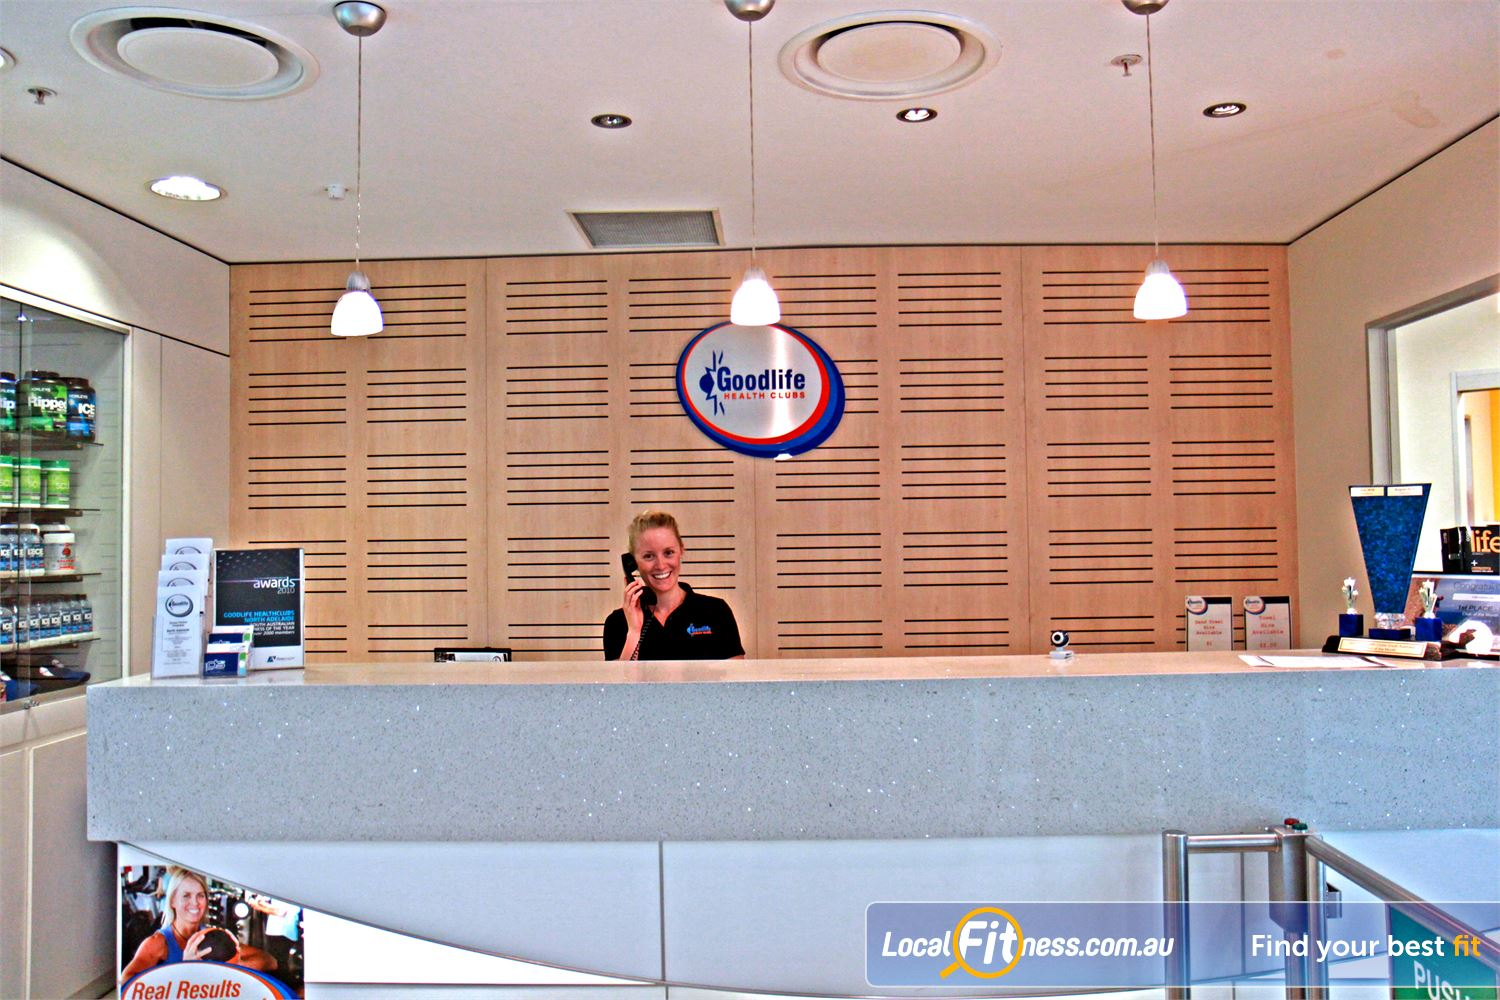 Goodlife Health Clubs North Adelaide Meet our friendly Goodlife team who will take care of your every need.